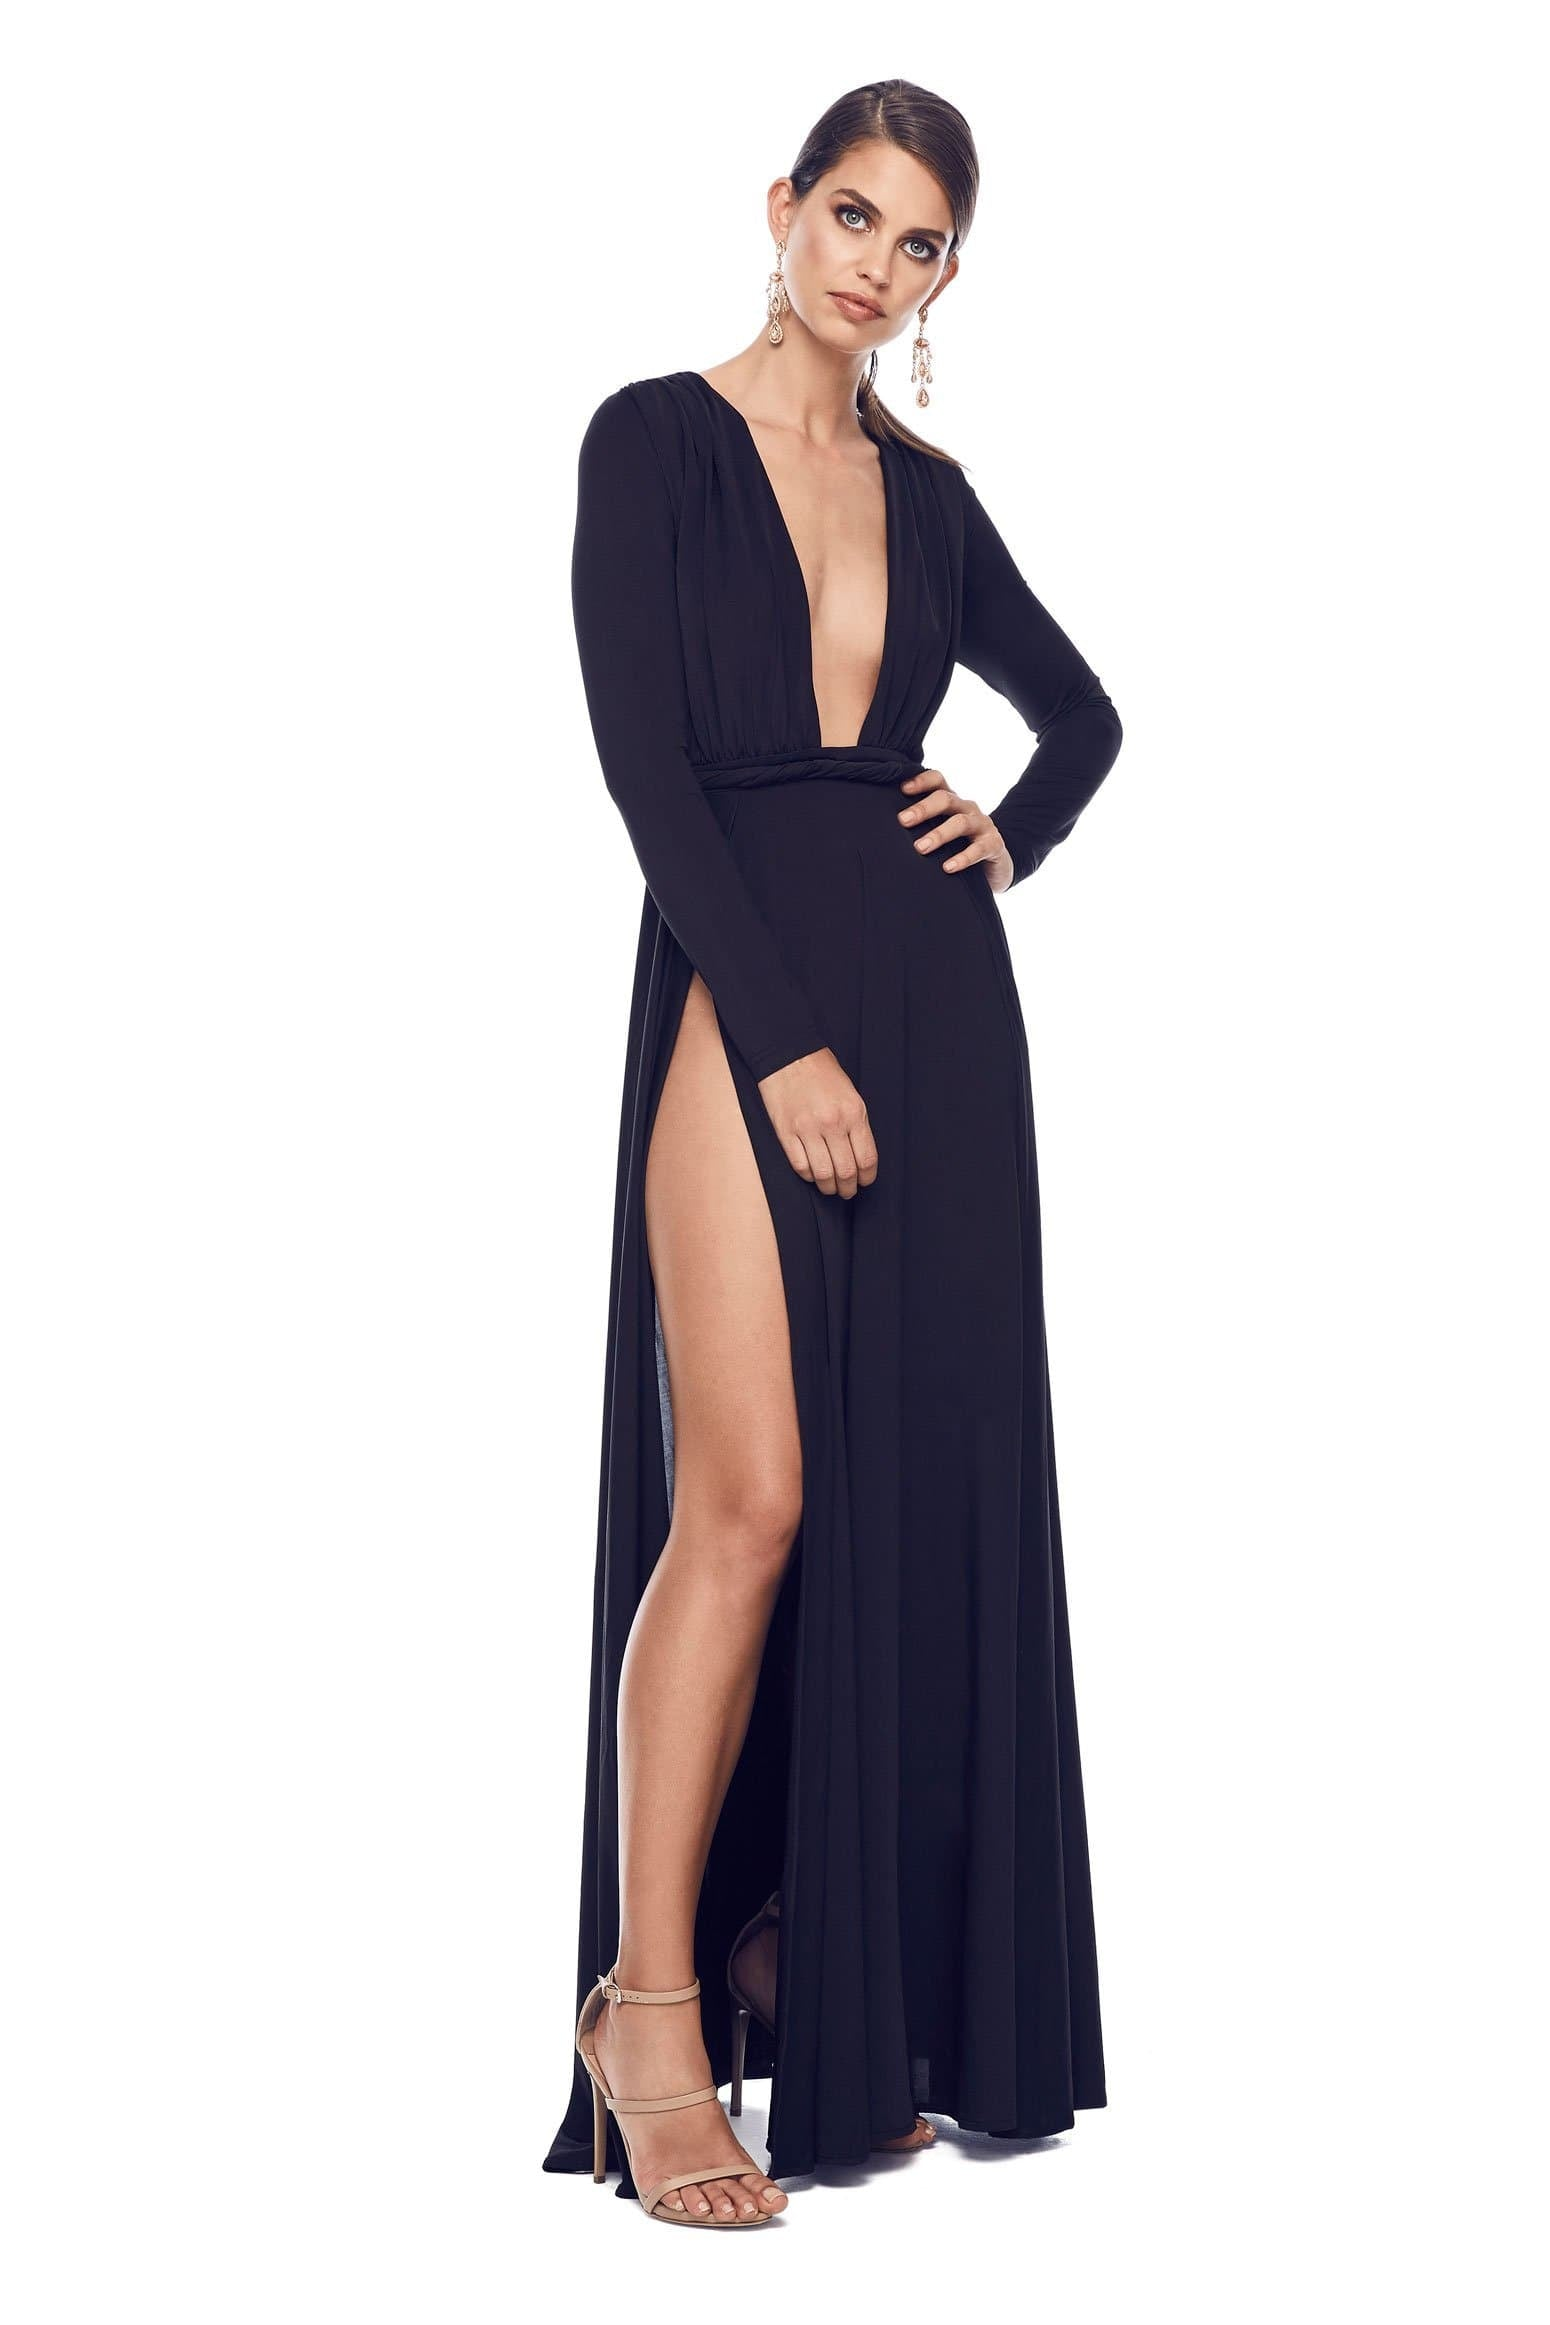 598e846778 Sahara - Black Long Sleeve Jersey Gown with Deep Plunge Neckline